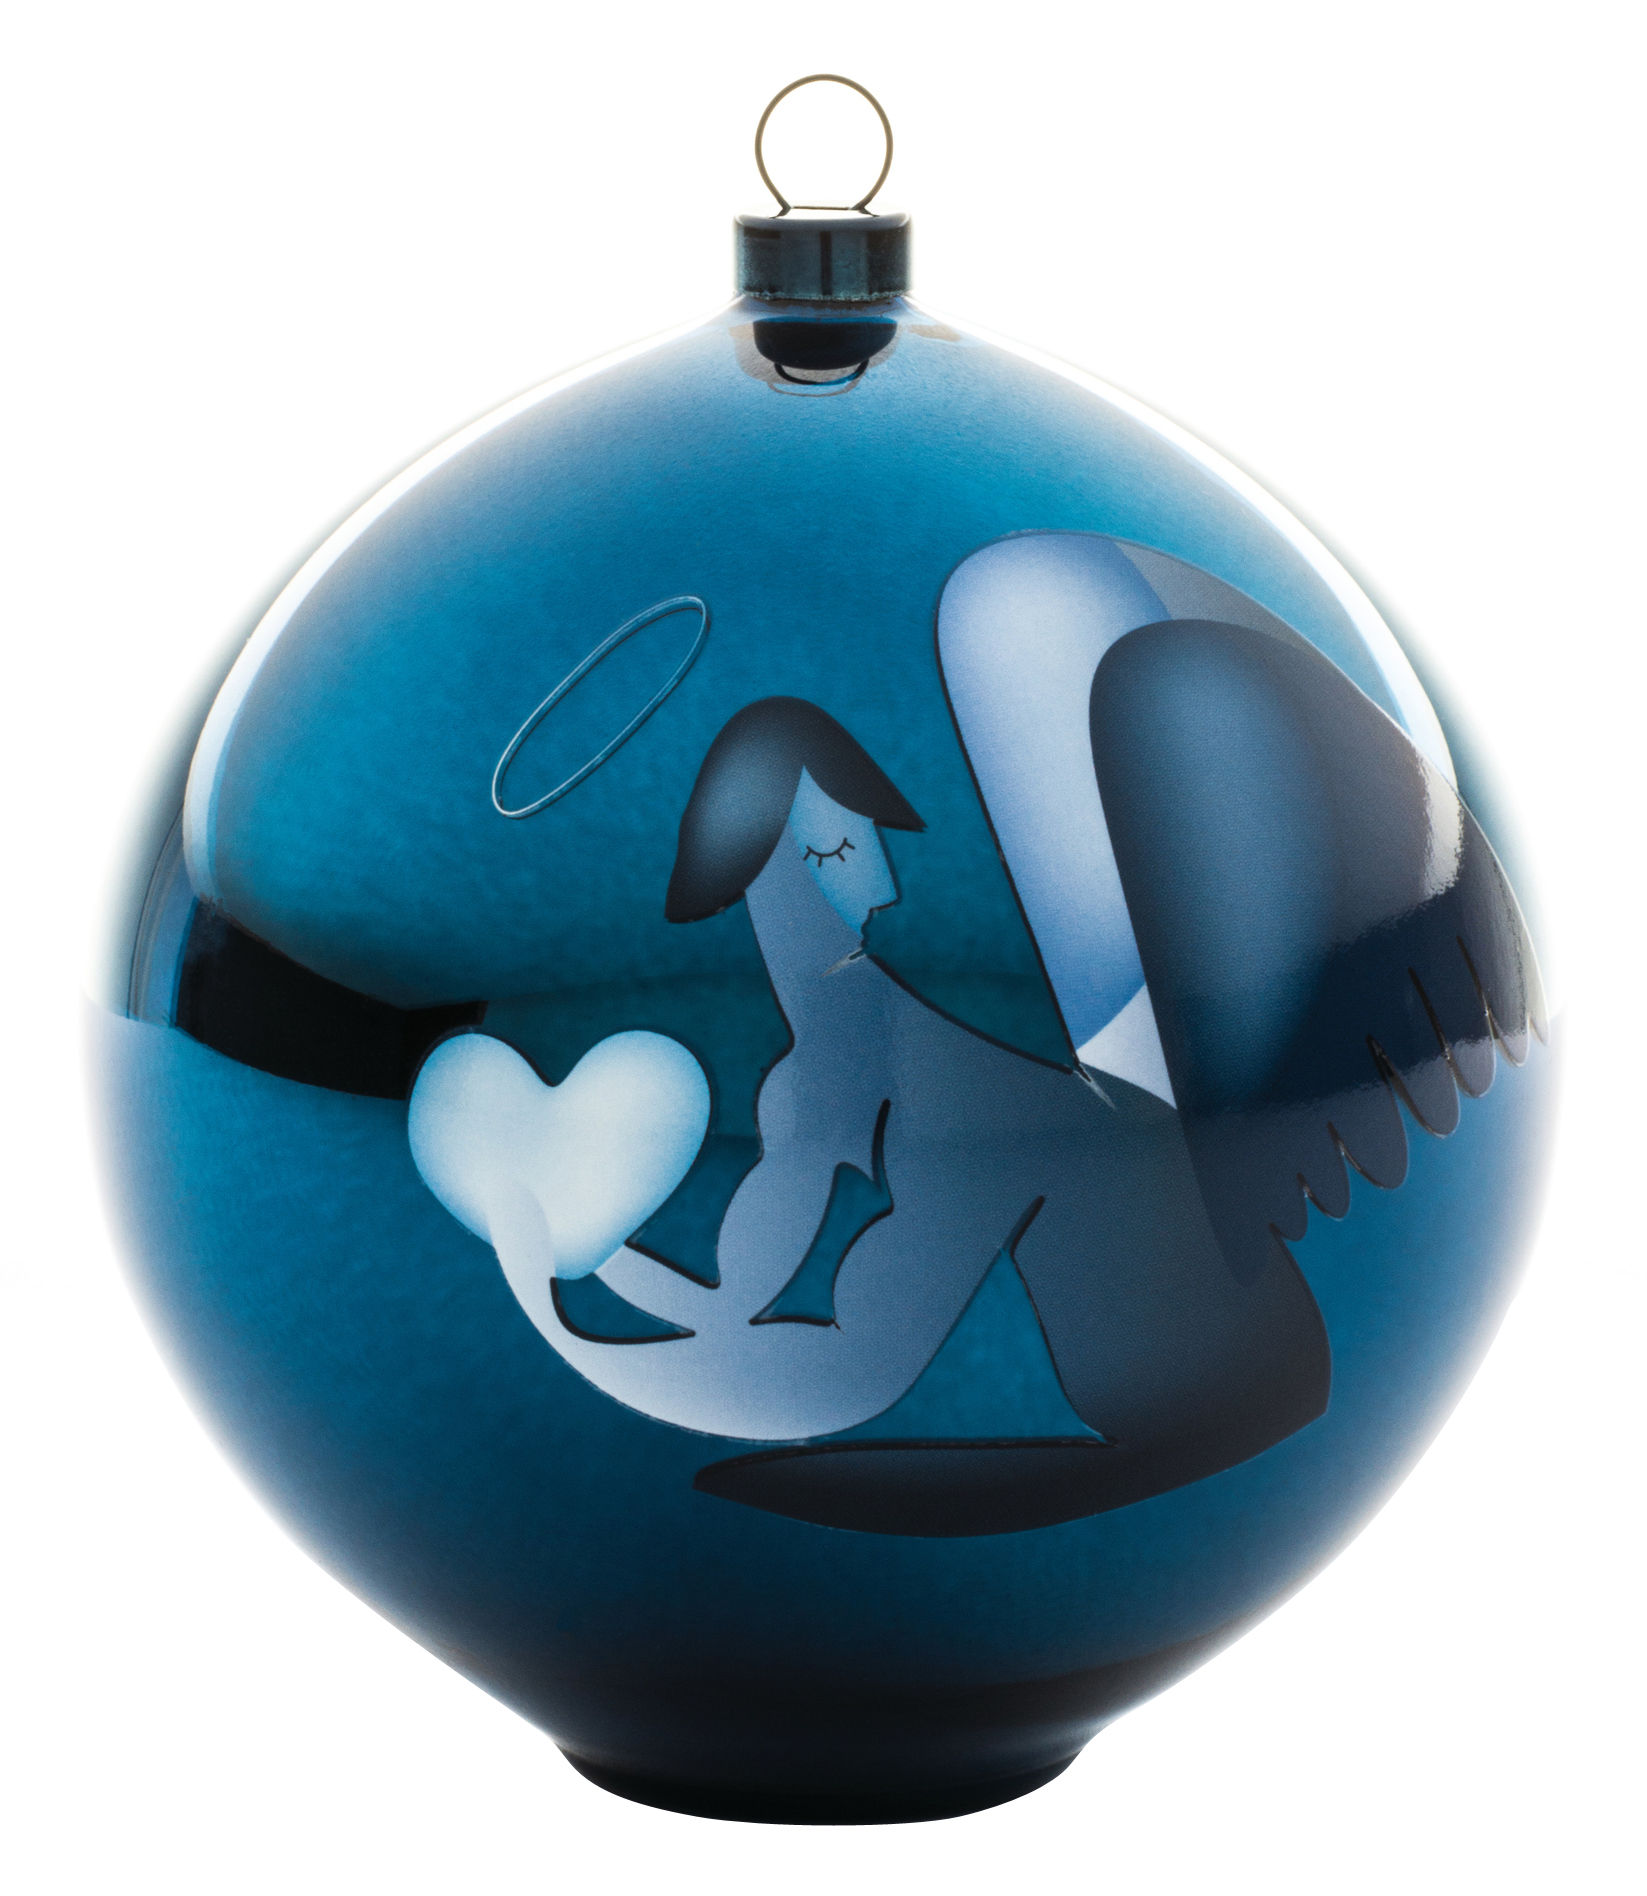 Decoration - Home Accessories - Blue christmas Bauble - / Blown glass by A di Alessi - Angel - Hand-decorated blown glass